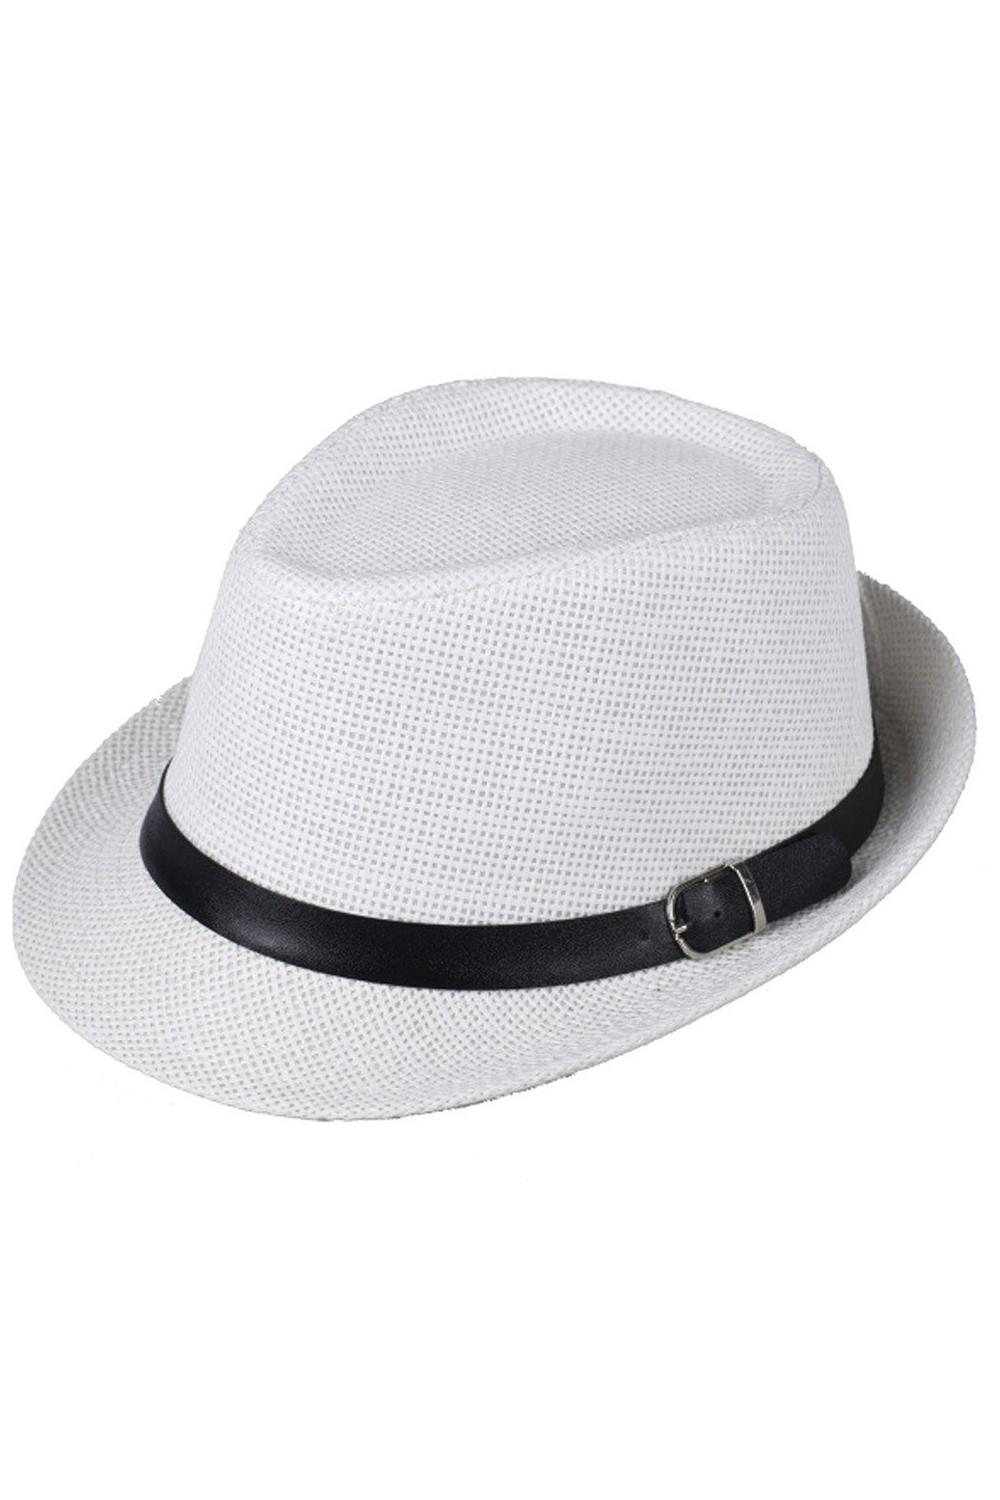 765dfc0155c Hat Boys Fedoras Trilby Cap Straw Beach Sunhat With Belt White ...